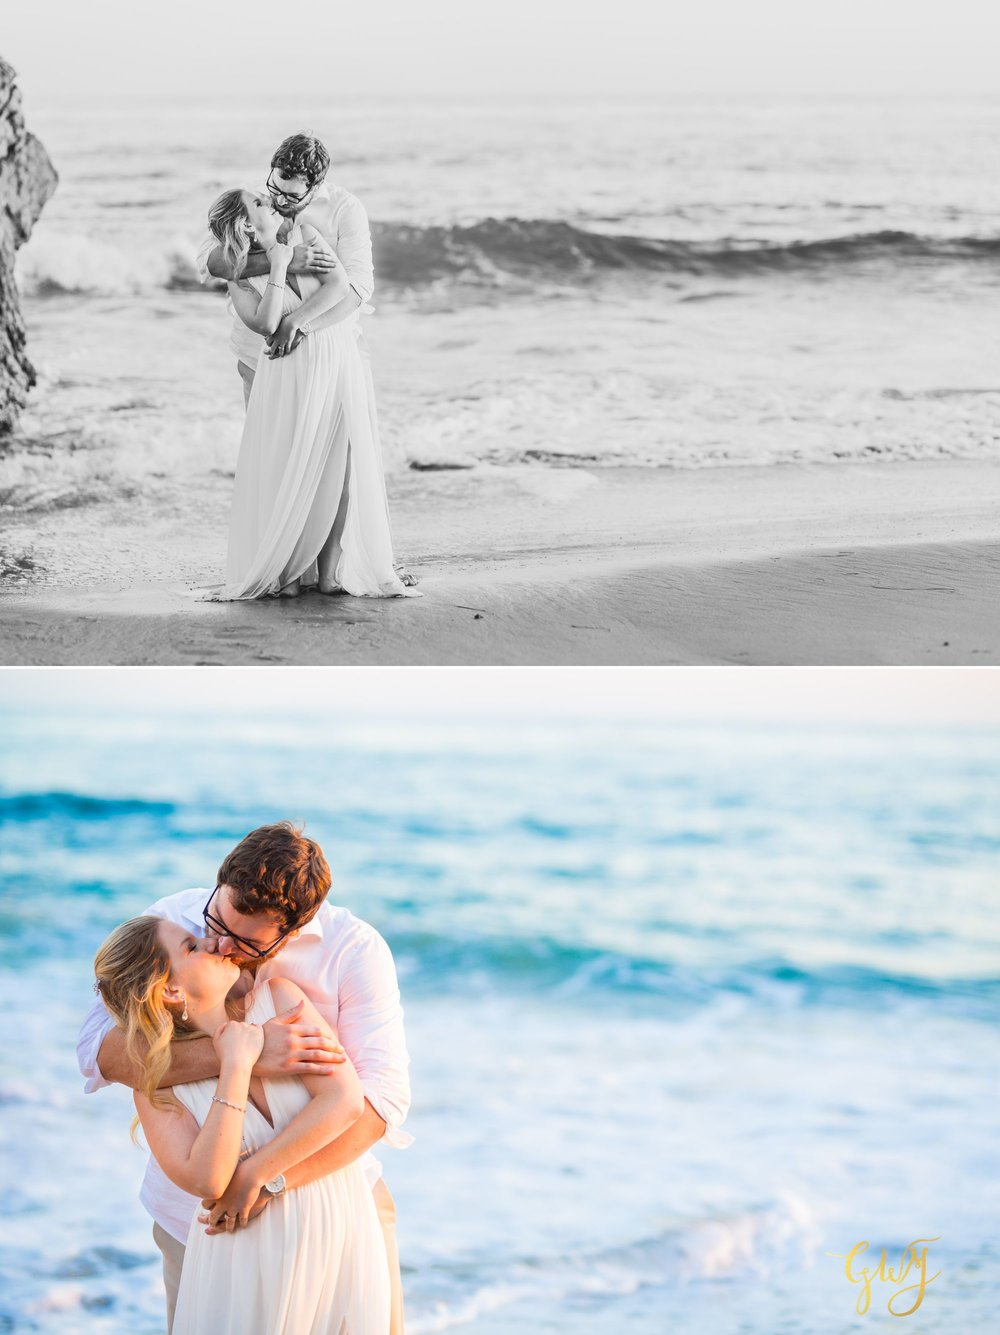 Amanda + Joe Reef Point Crystal Cove Newport Beach Sunset Romantic Intimate Elopement by Glass Woods Media 16.jpg